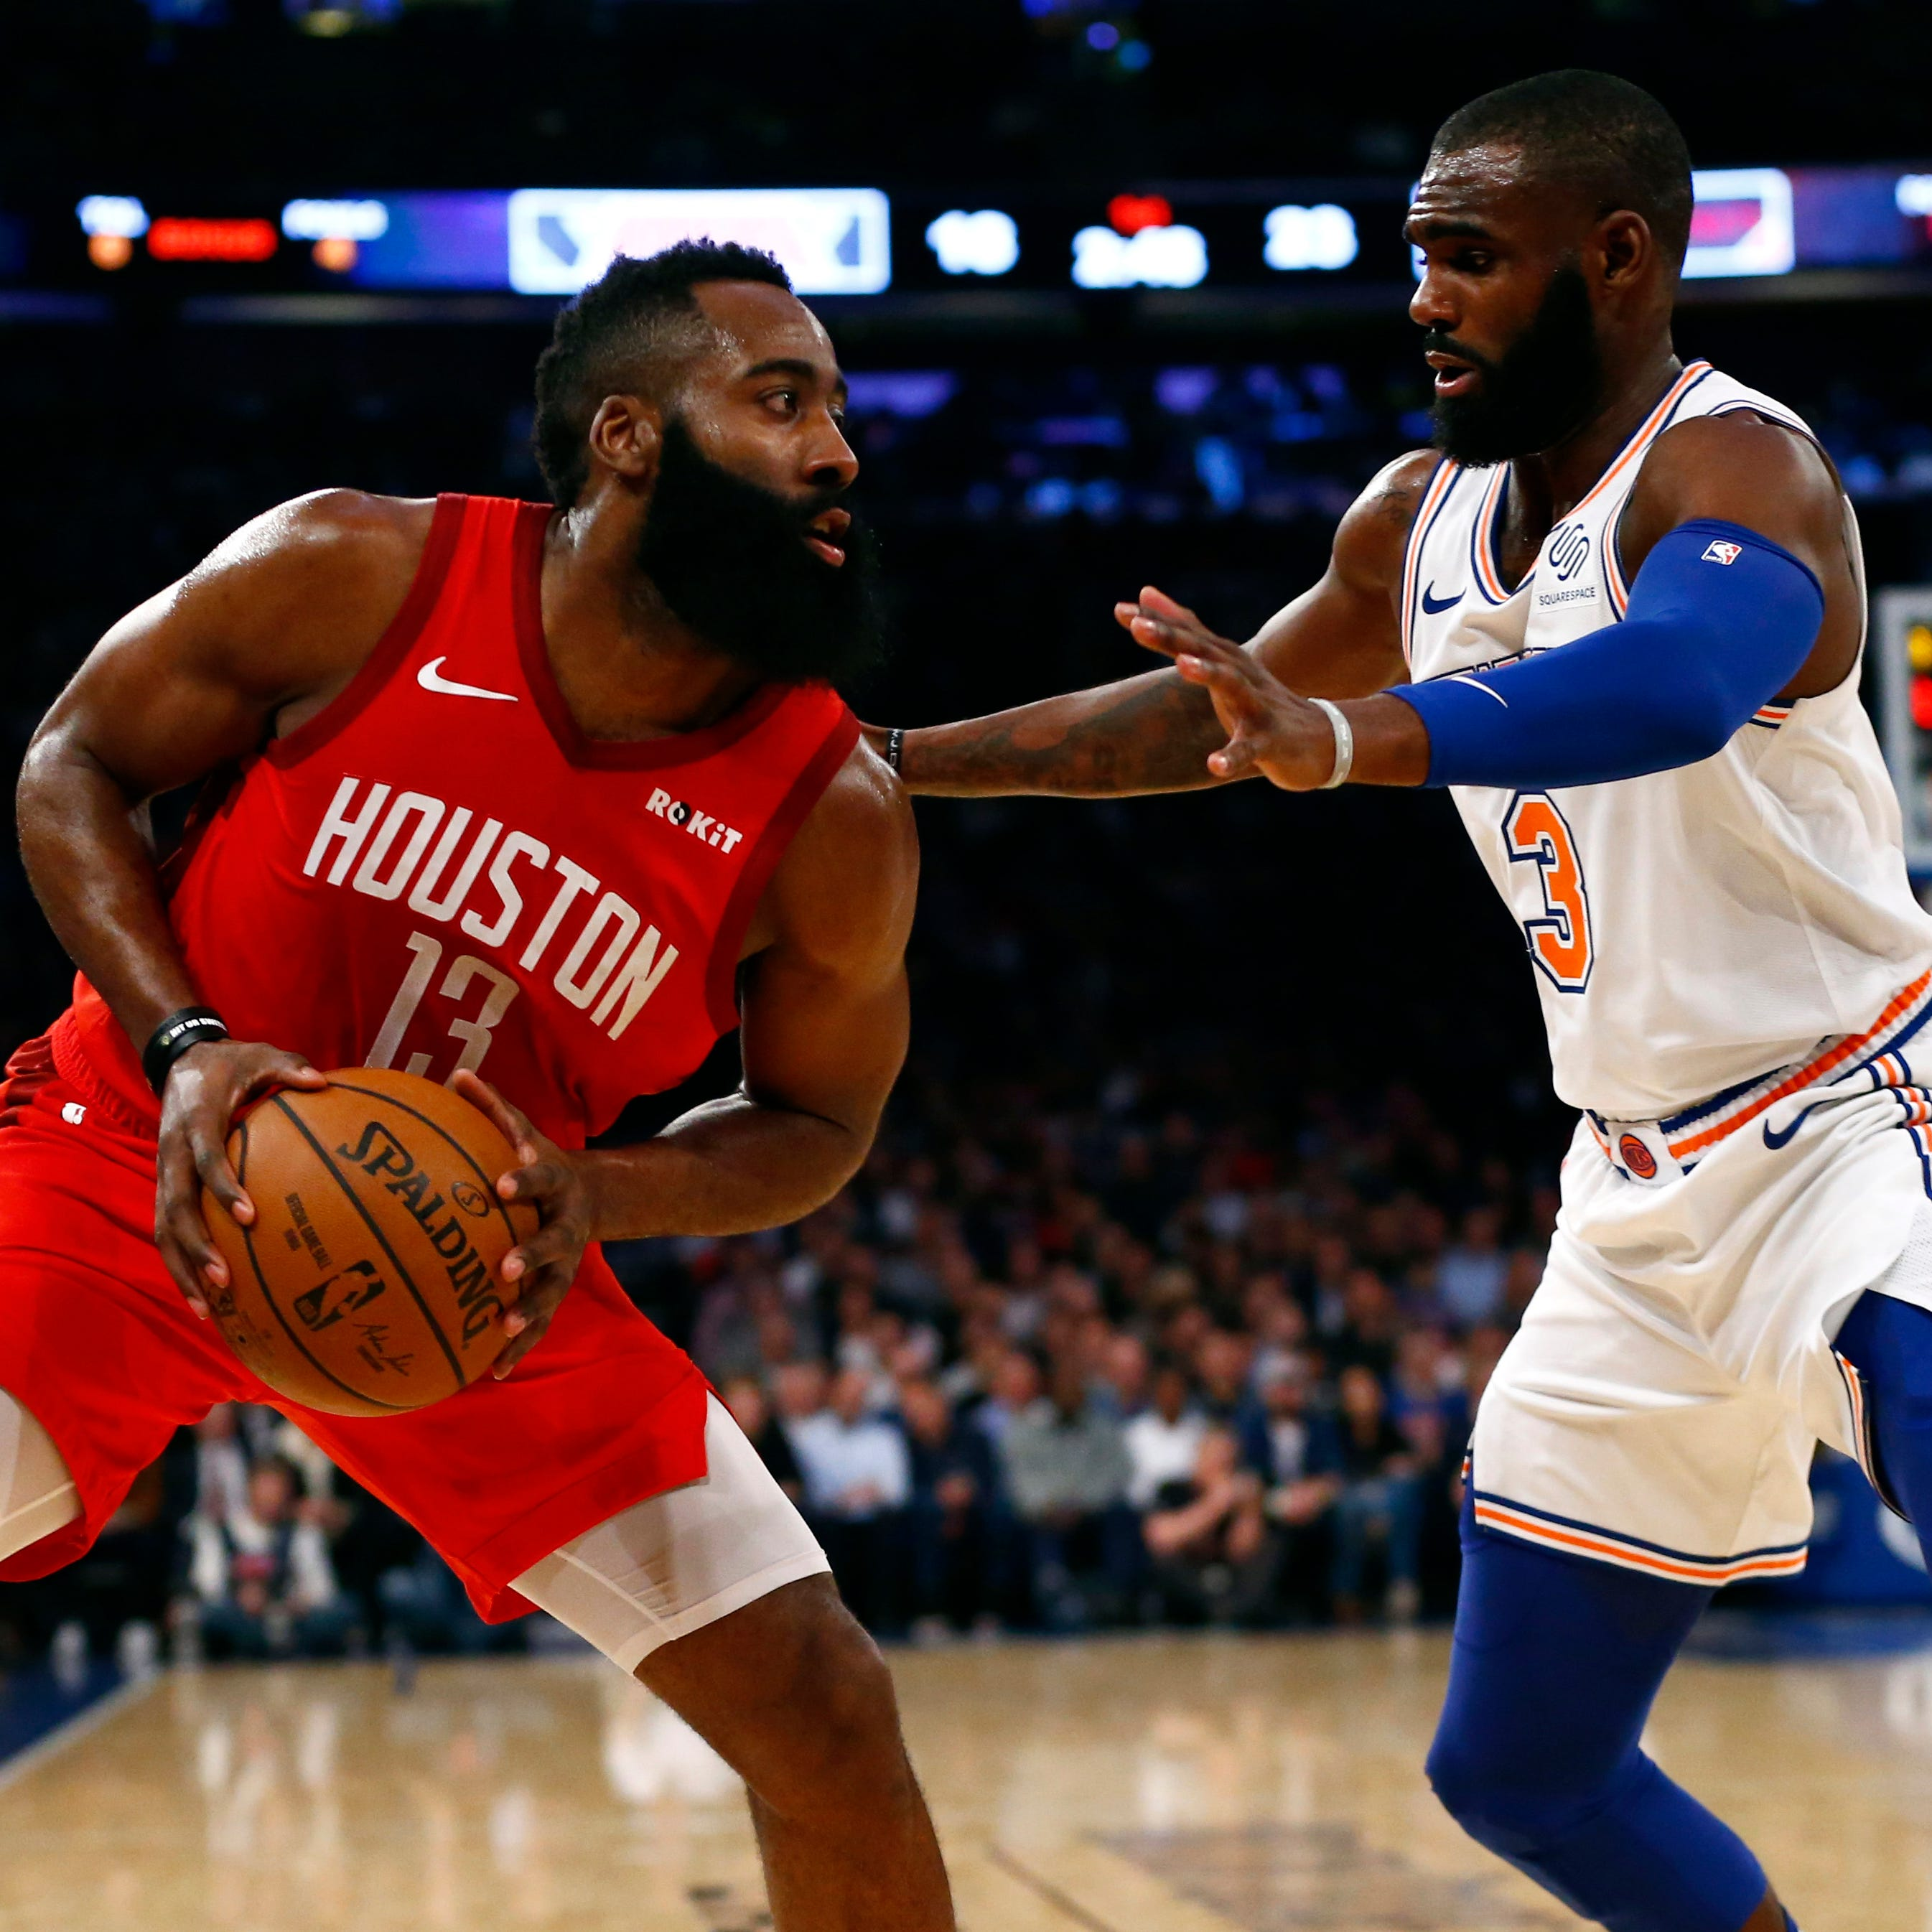 James Harden scores 61 to continue blistering scoring stretch as Rockets fend off Knicks